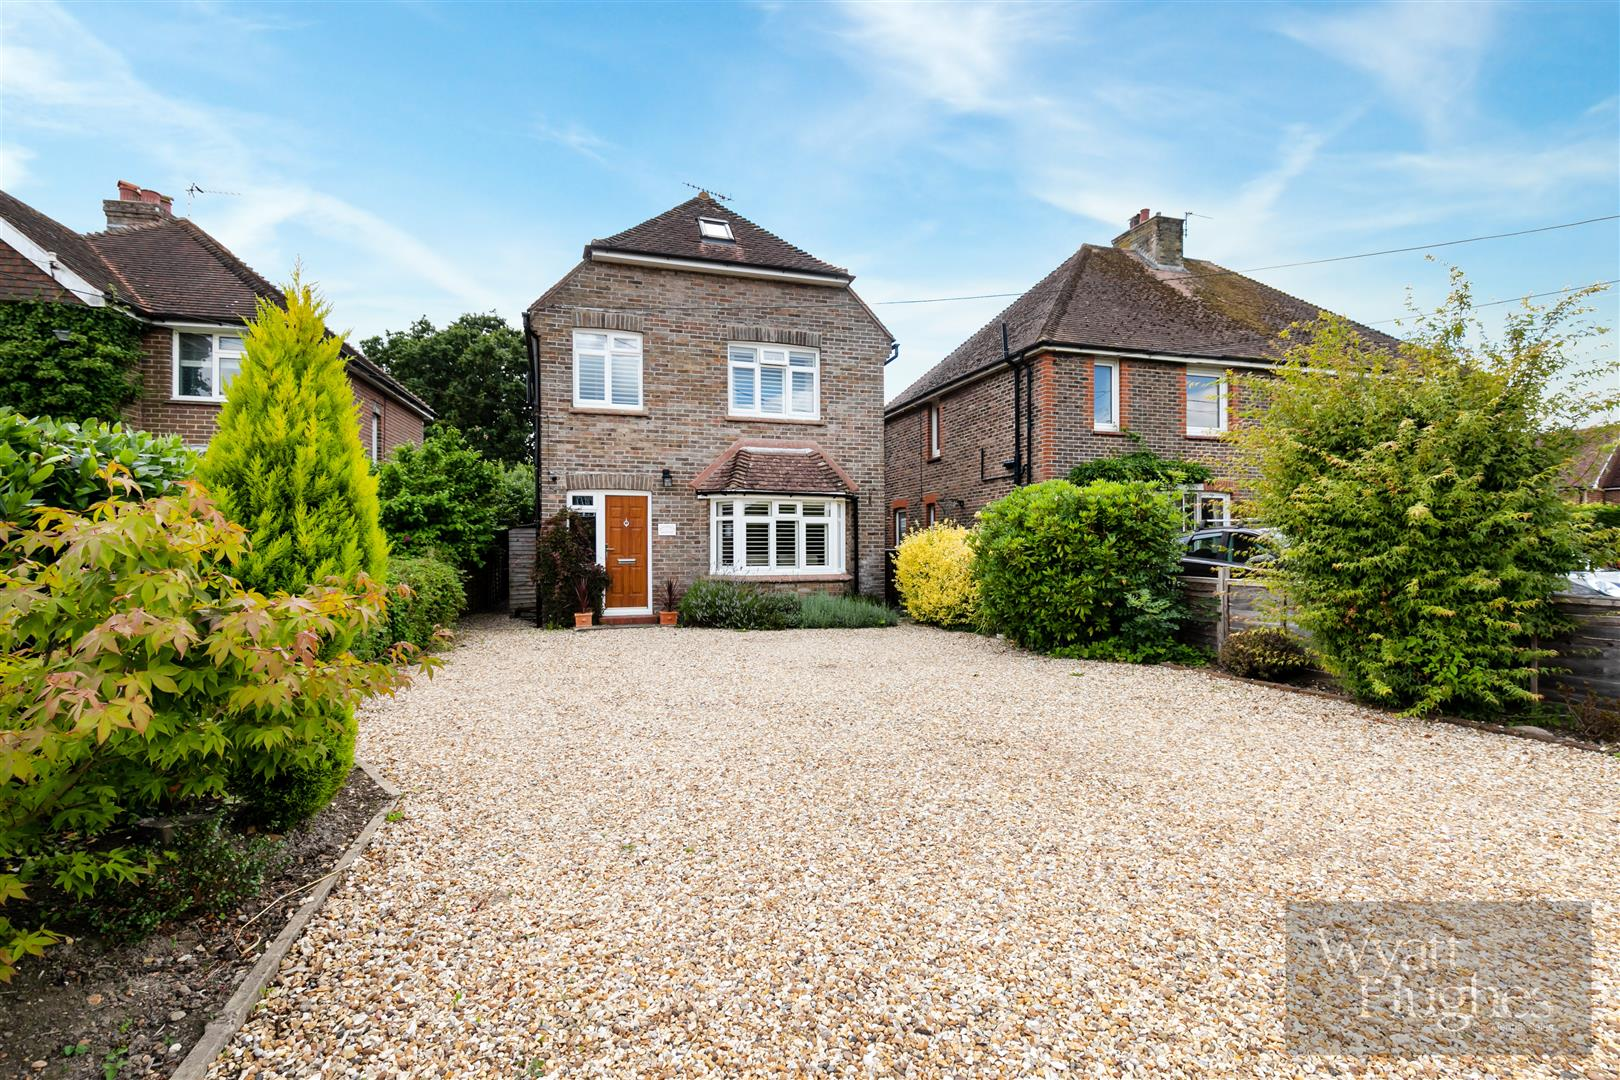 3 bed detached-house for sale in The Green, Ninfield, TN33